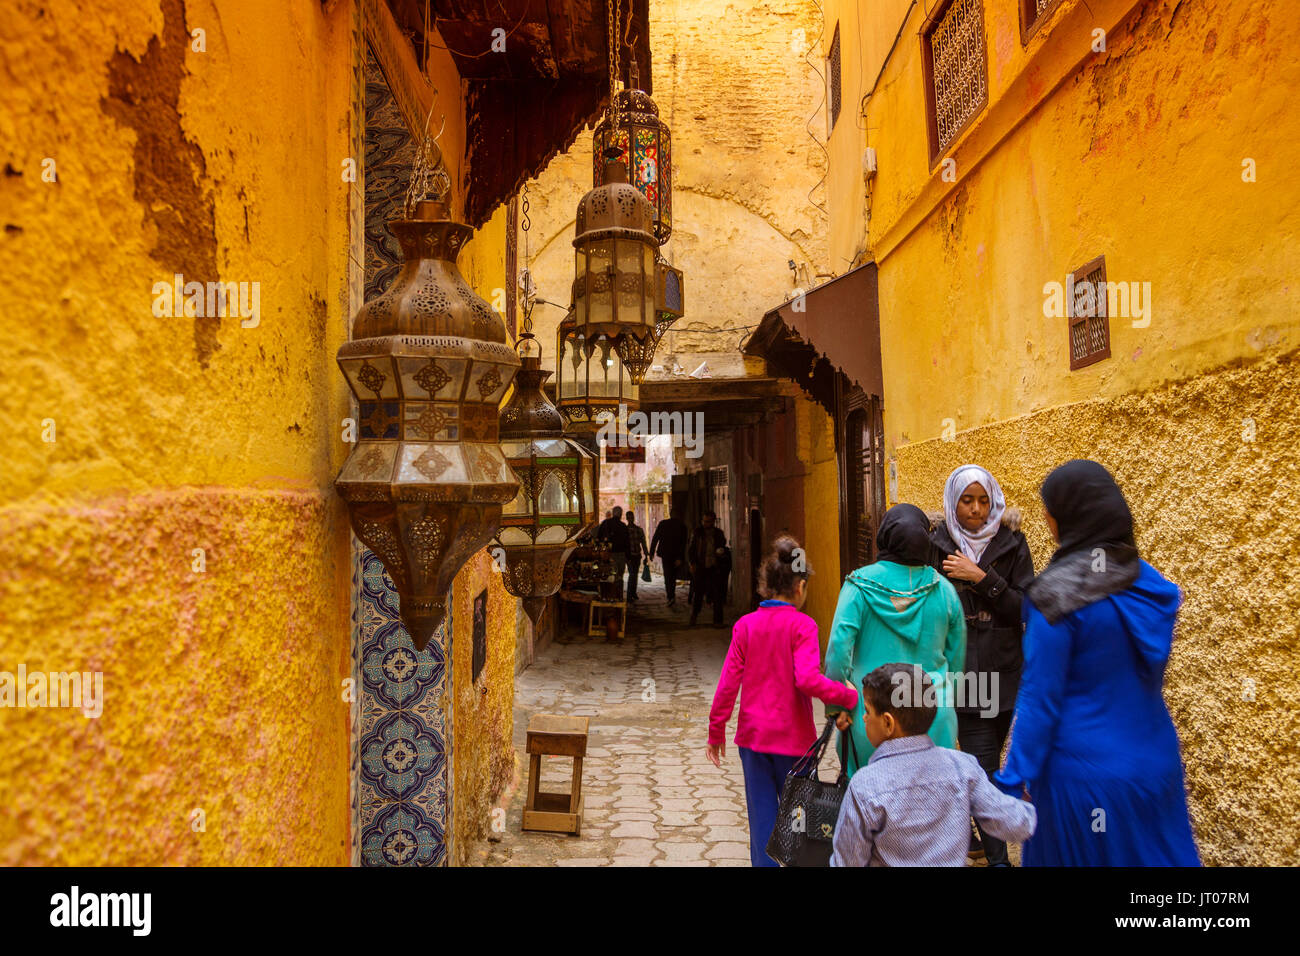 Street life scene. Imperial city Meknes, Morocco, Maghreb North Africa - Stock Image